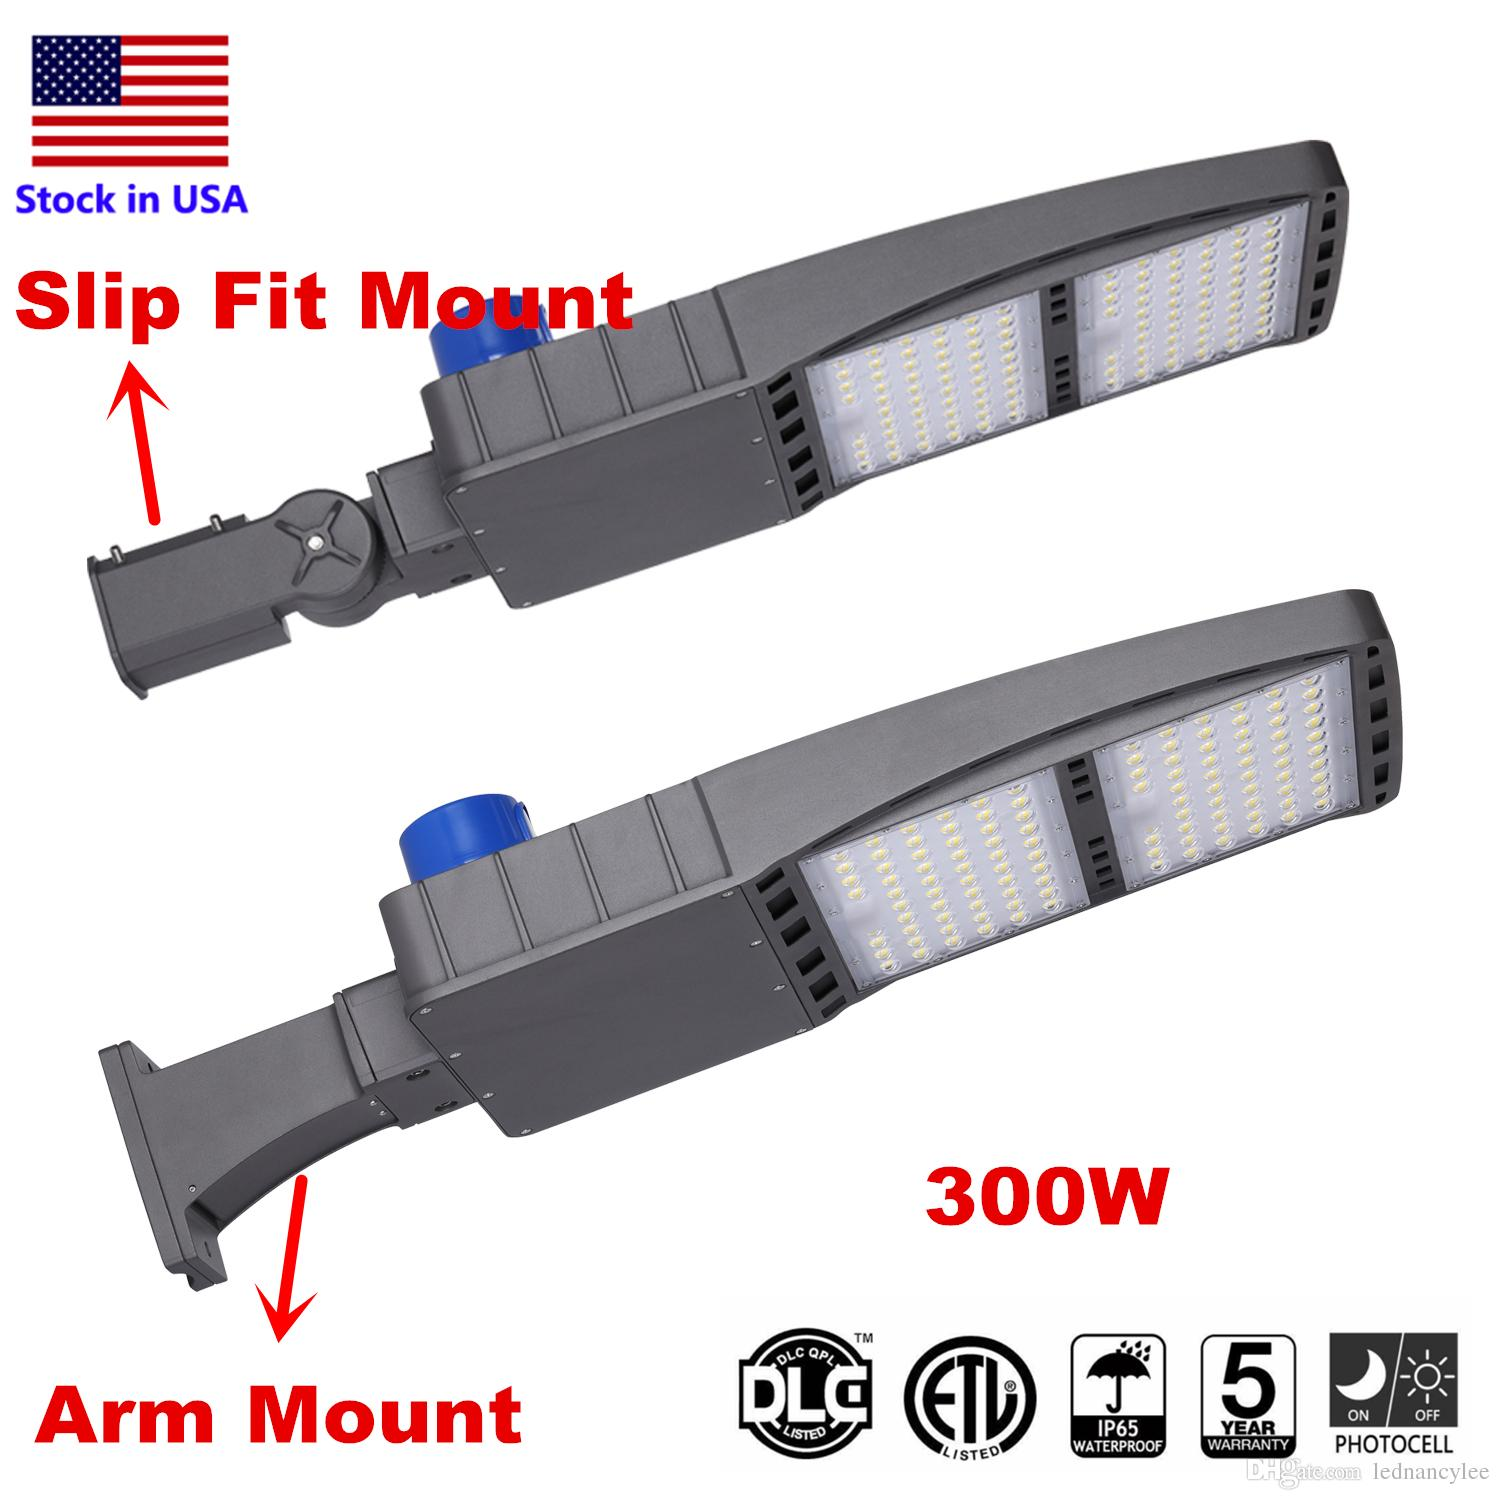 DLC ETL LED Shoebox Pole Light Parking Lot Lights, 300W 5000K Direct Wiring AC 100-277V, IP65 Street Parking Lot Lights, Free Photocell